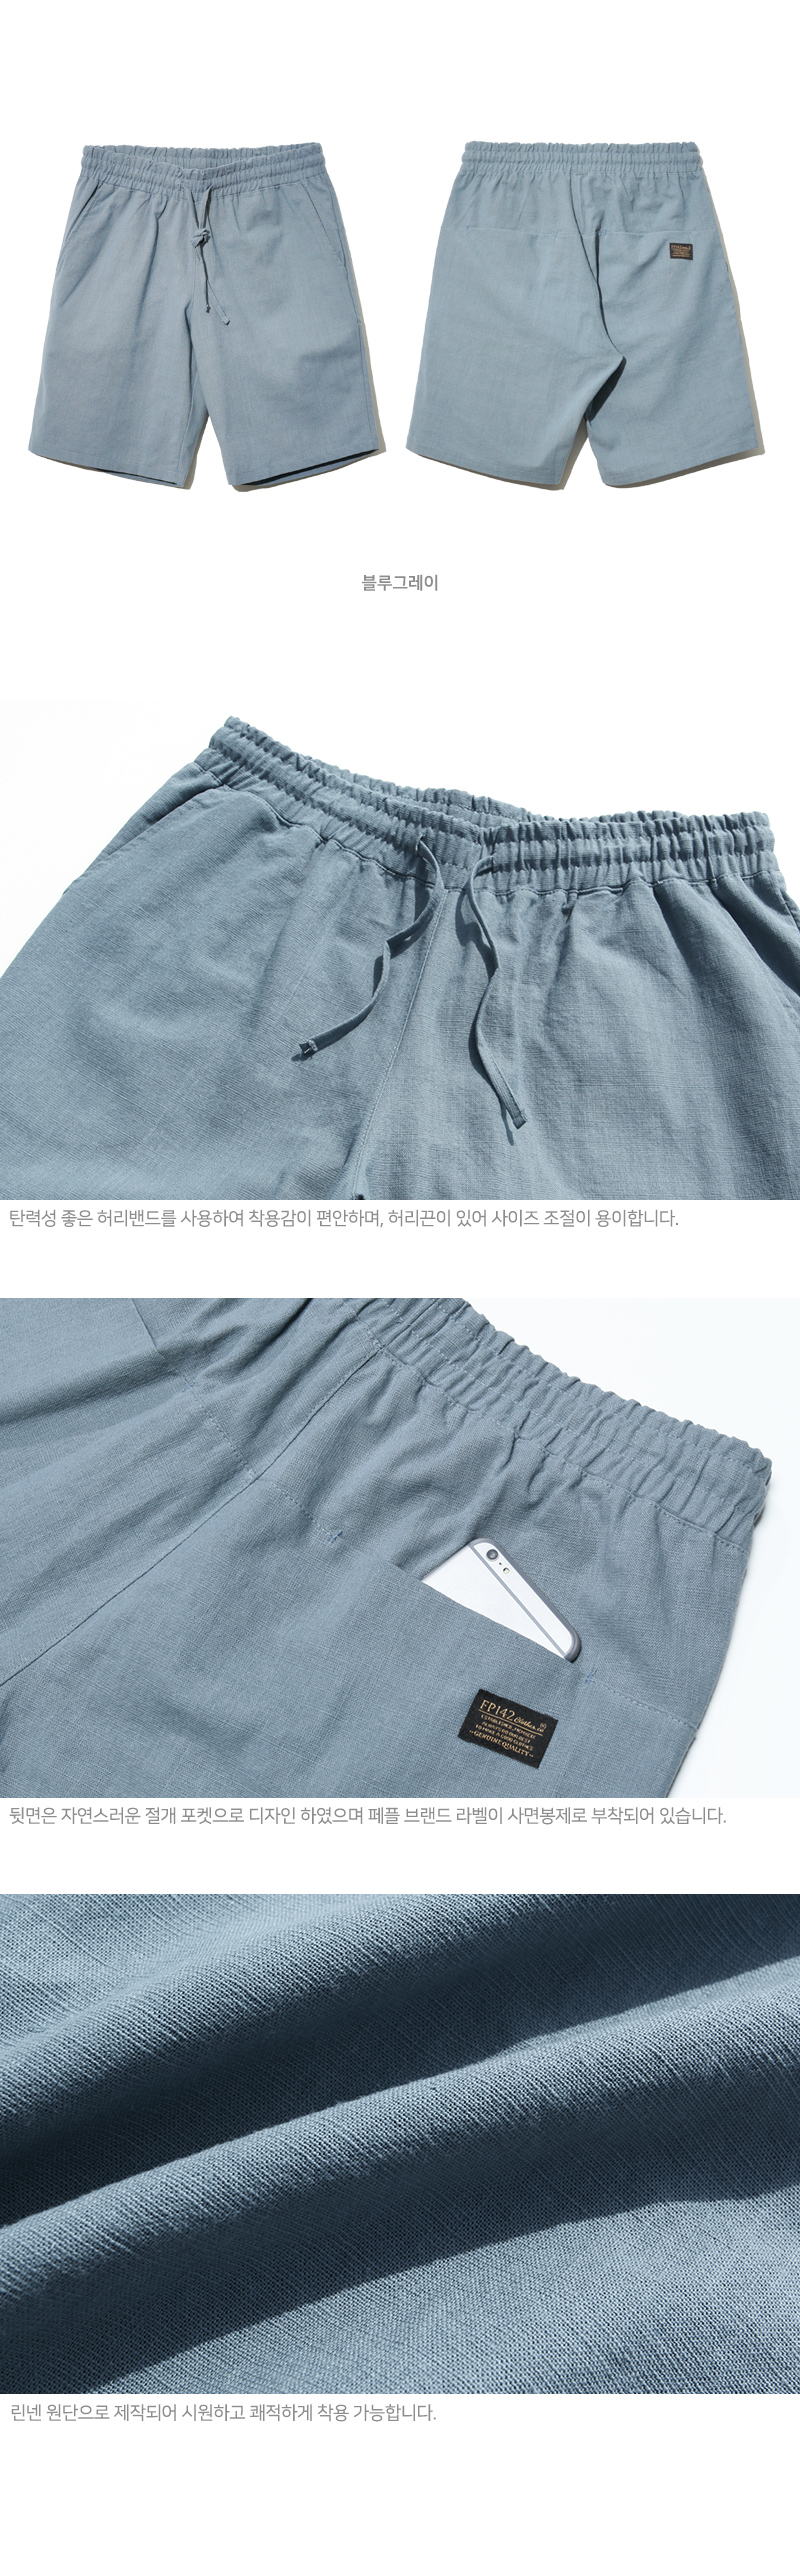 20190422_fp_realcooshortpants_detail_bluegray.jpg